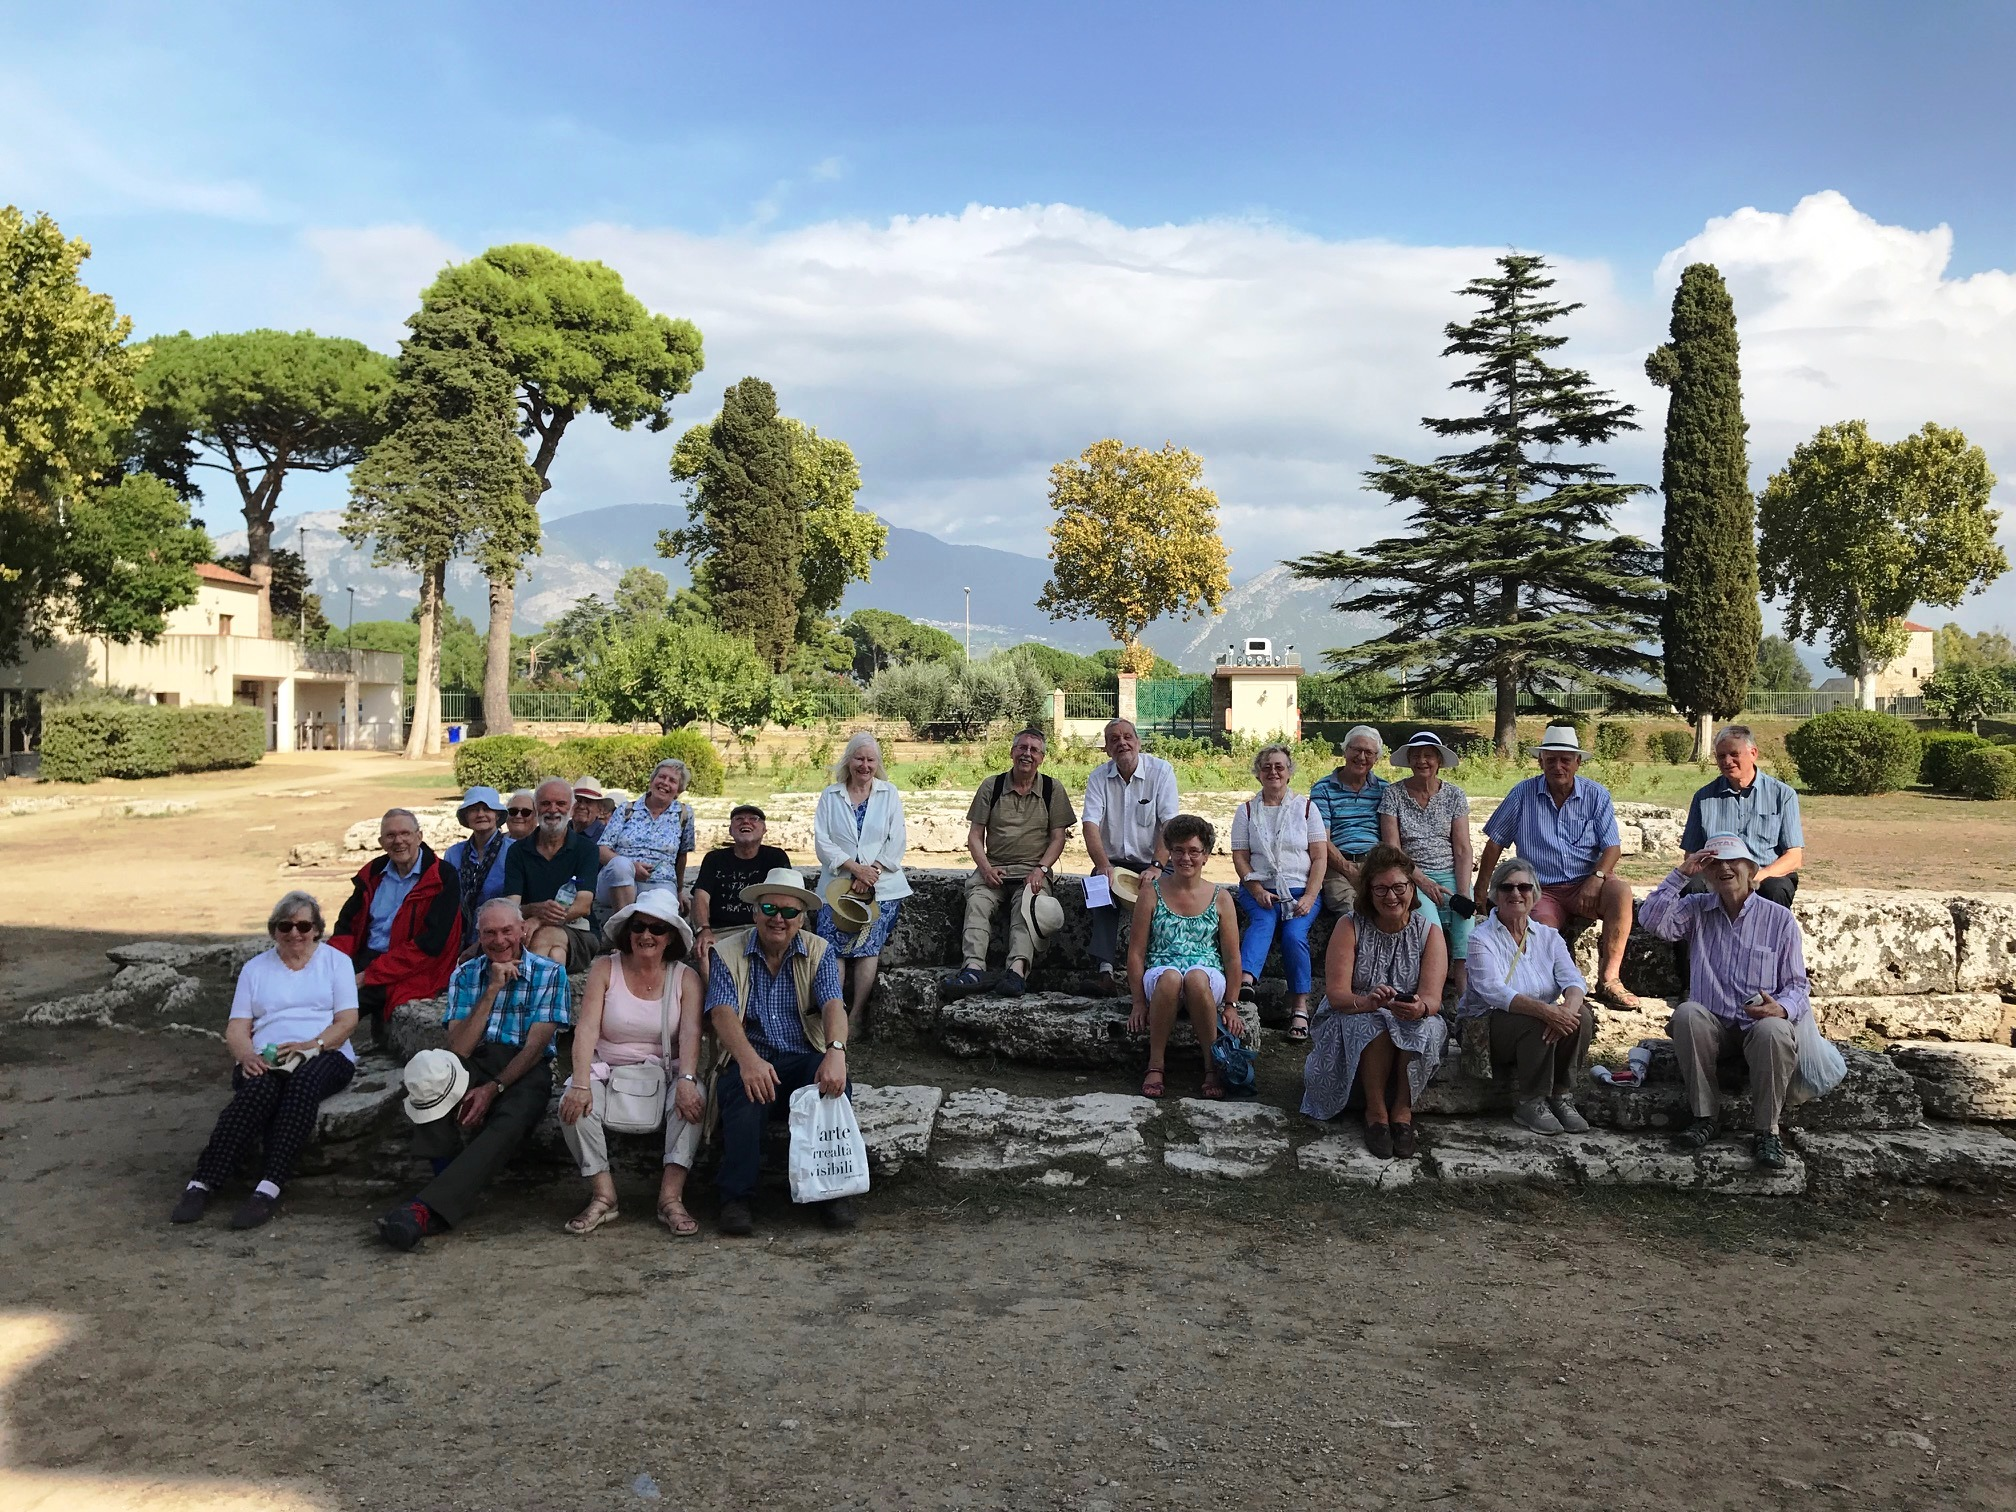 Happy faces on the Society visit to Paestum, Italy. September 2019